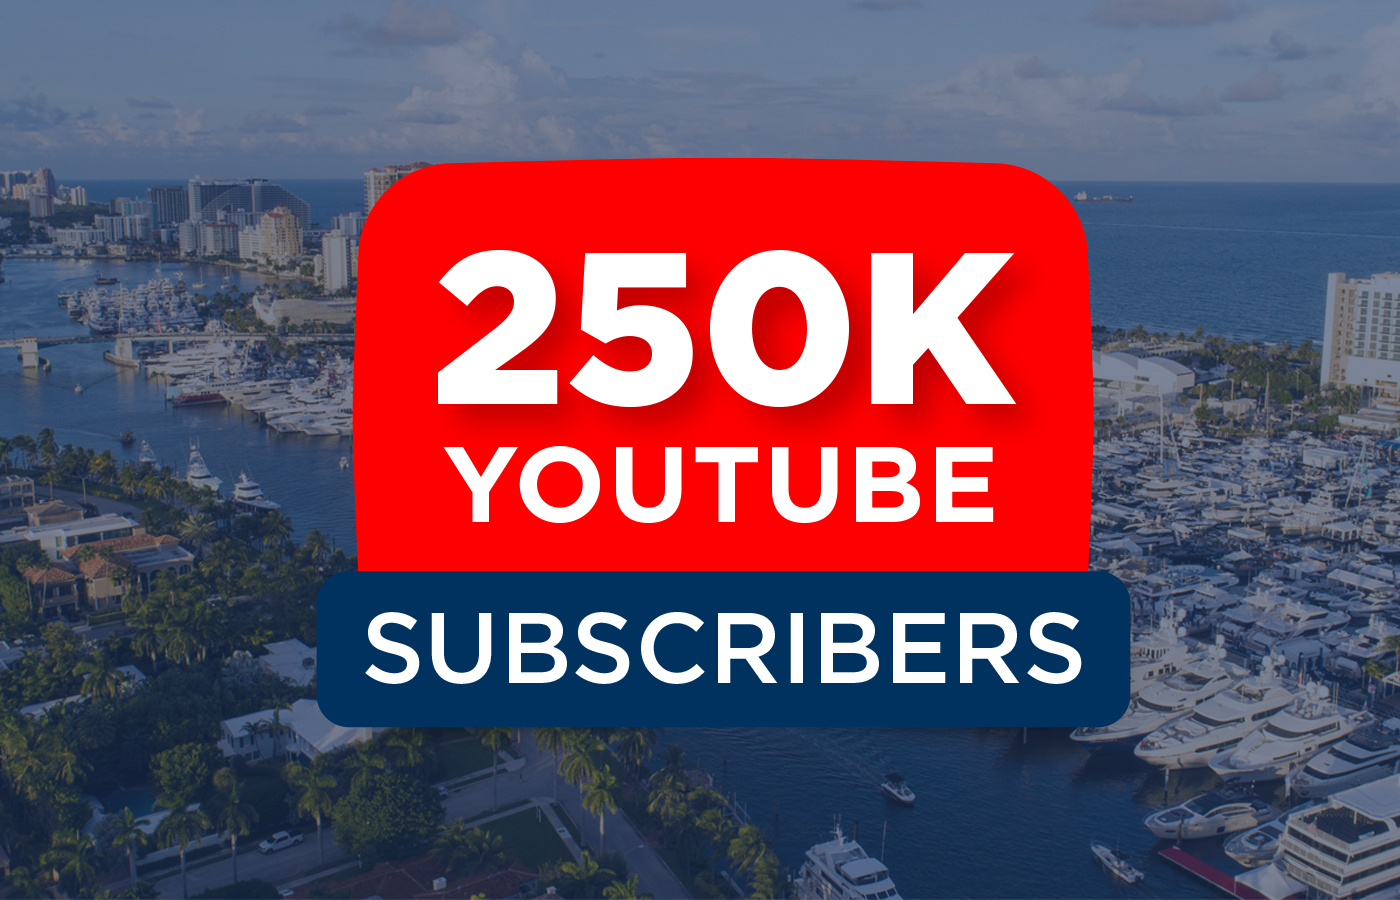 Denison Becomes First Brokerage Firm to Reach 250k Subscribers on Youtube